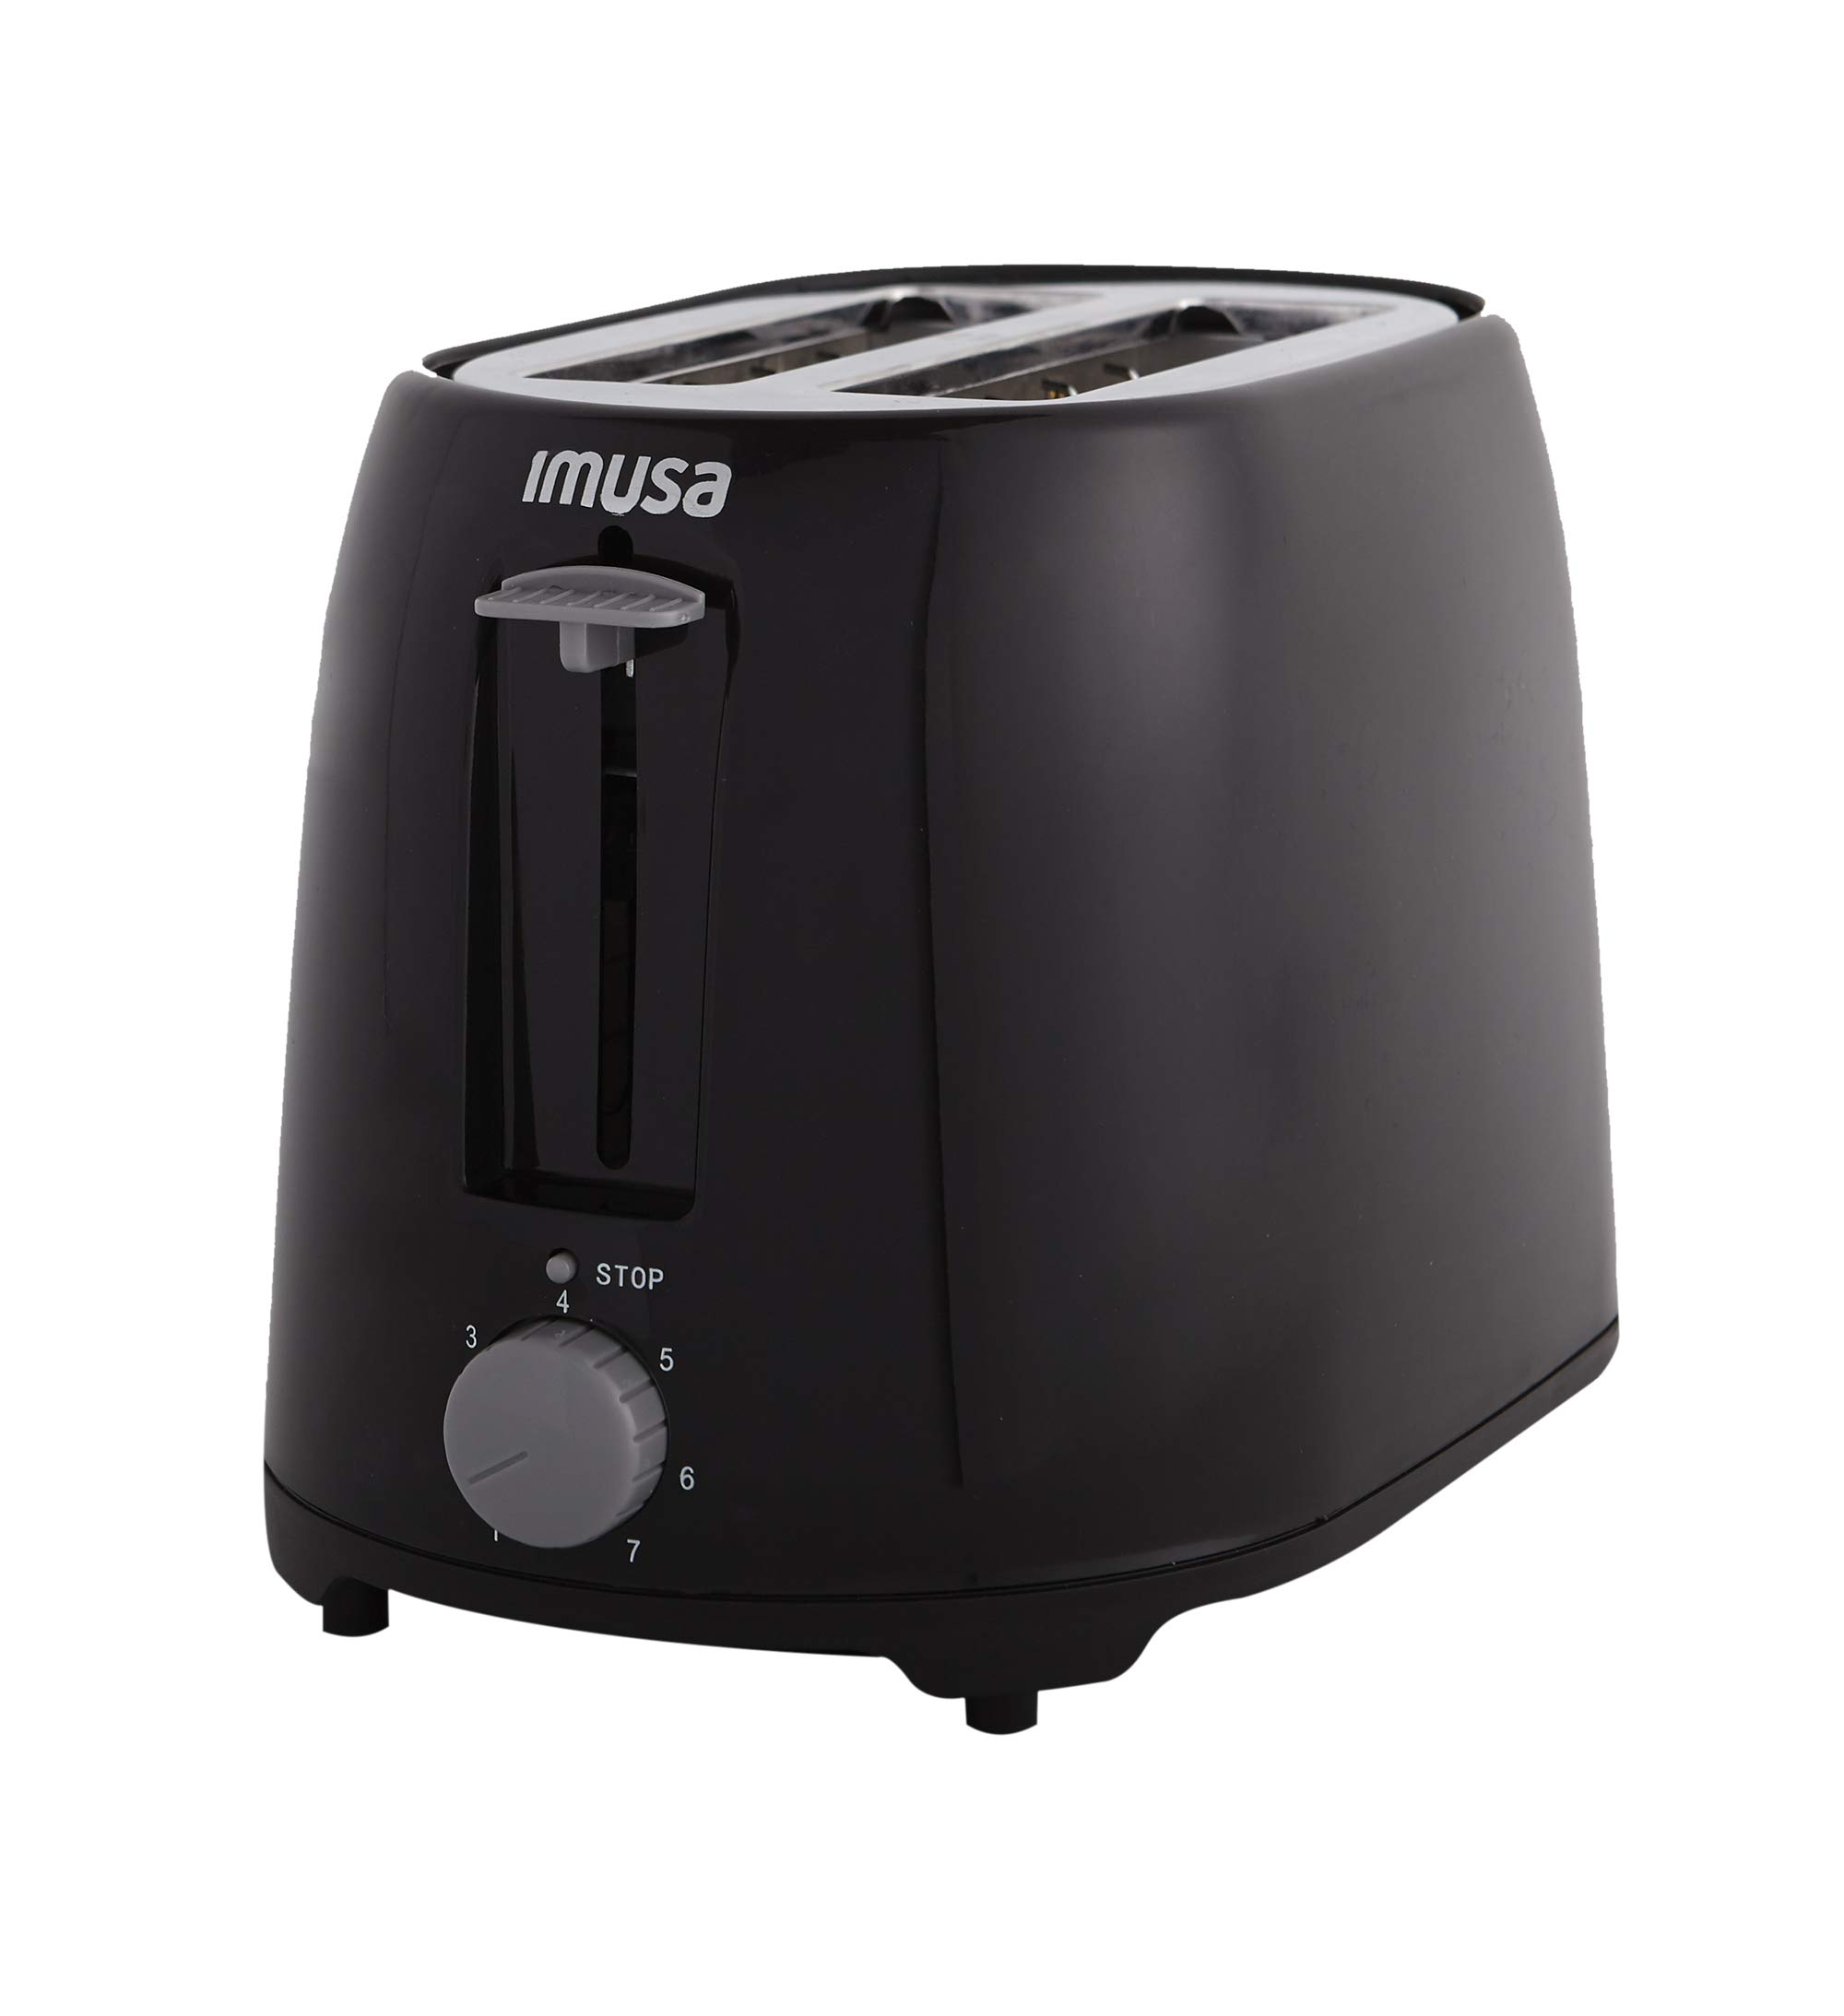 IMUSA USA GAU-80321B Black 2-Slice Basic Cool Touch Toaster with Extra-Wide Slot for Bagels and Removable Crumb Tray by IMUSA USA